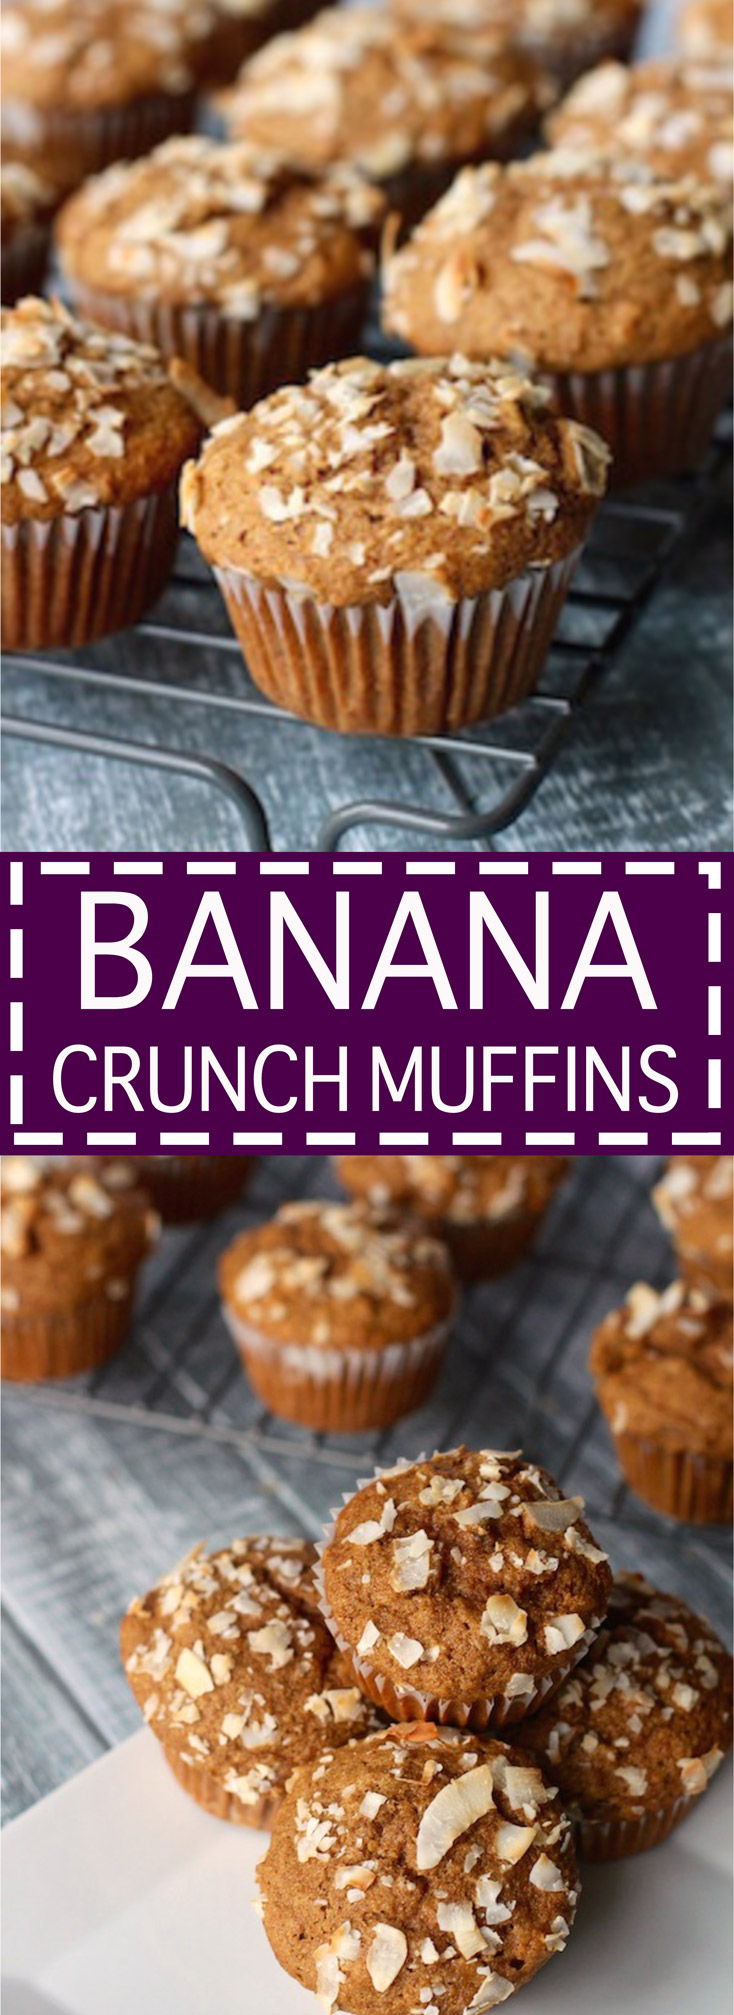 Banana Crunch Muffins- Clean eating friendly and delicious!